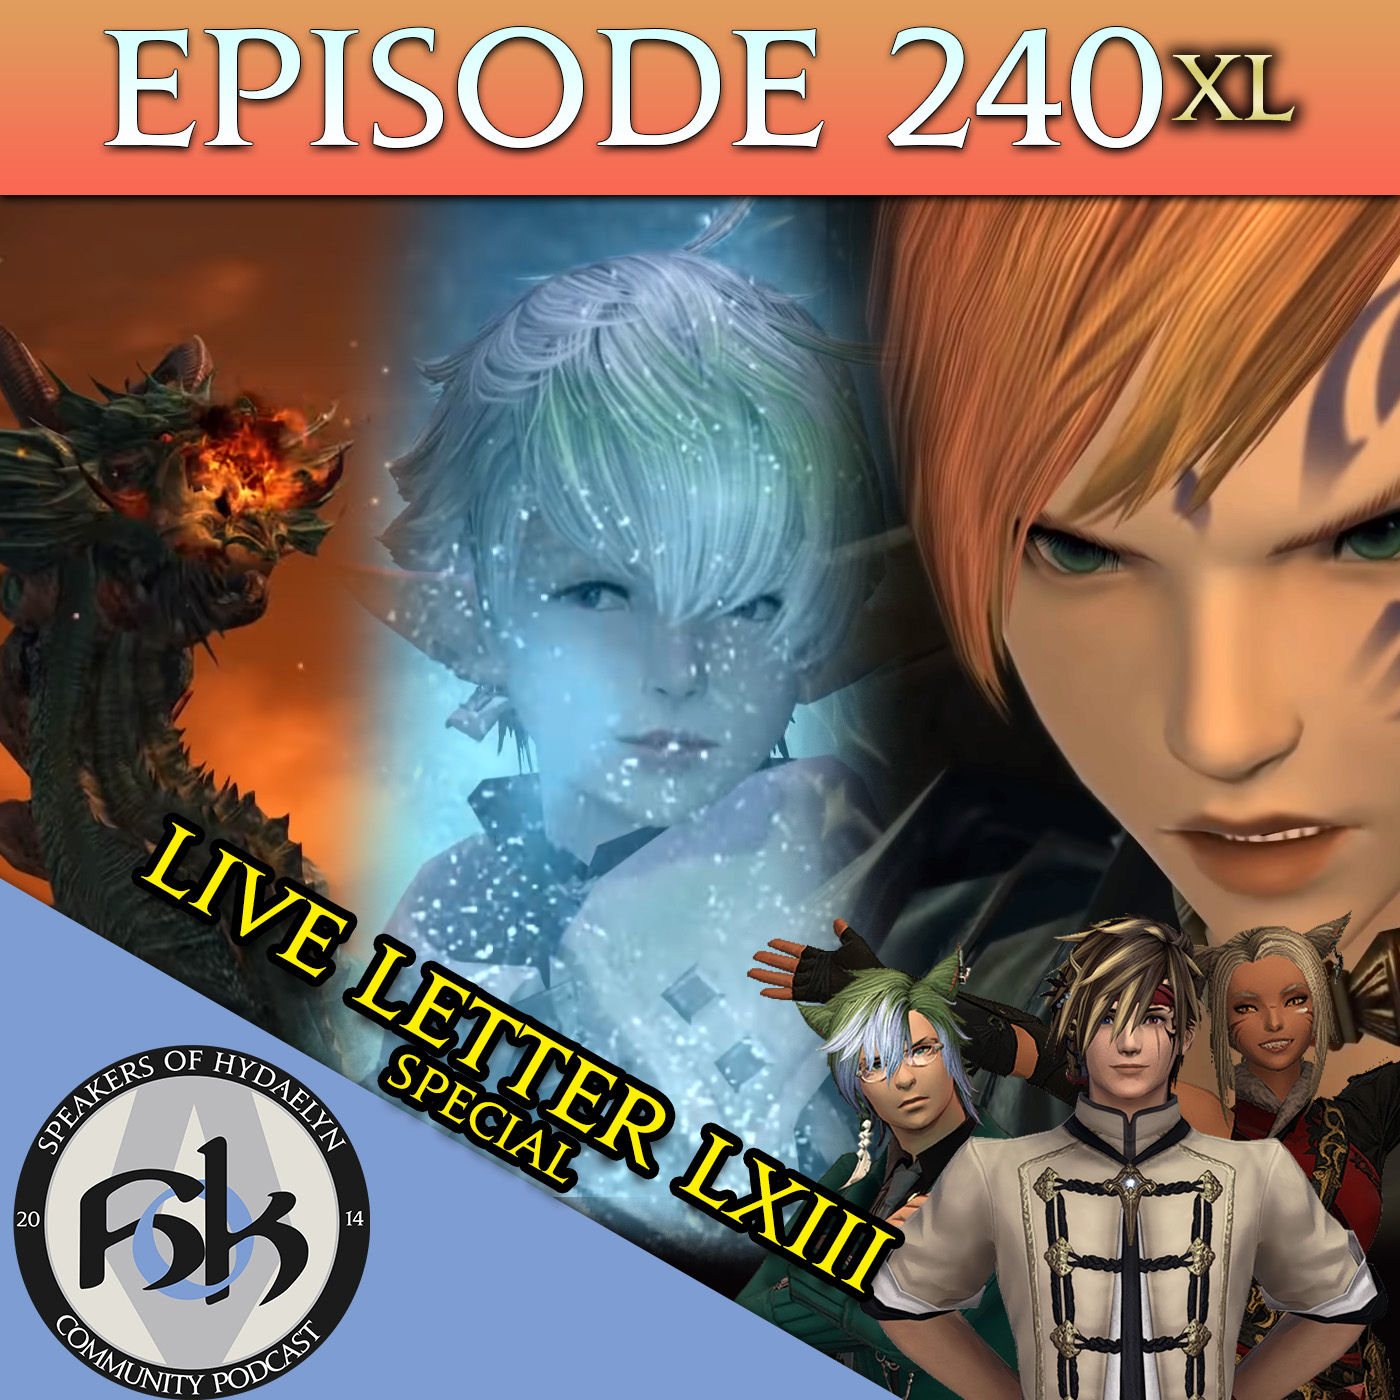 Episode 240 XL | Live Letter LXIII Special